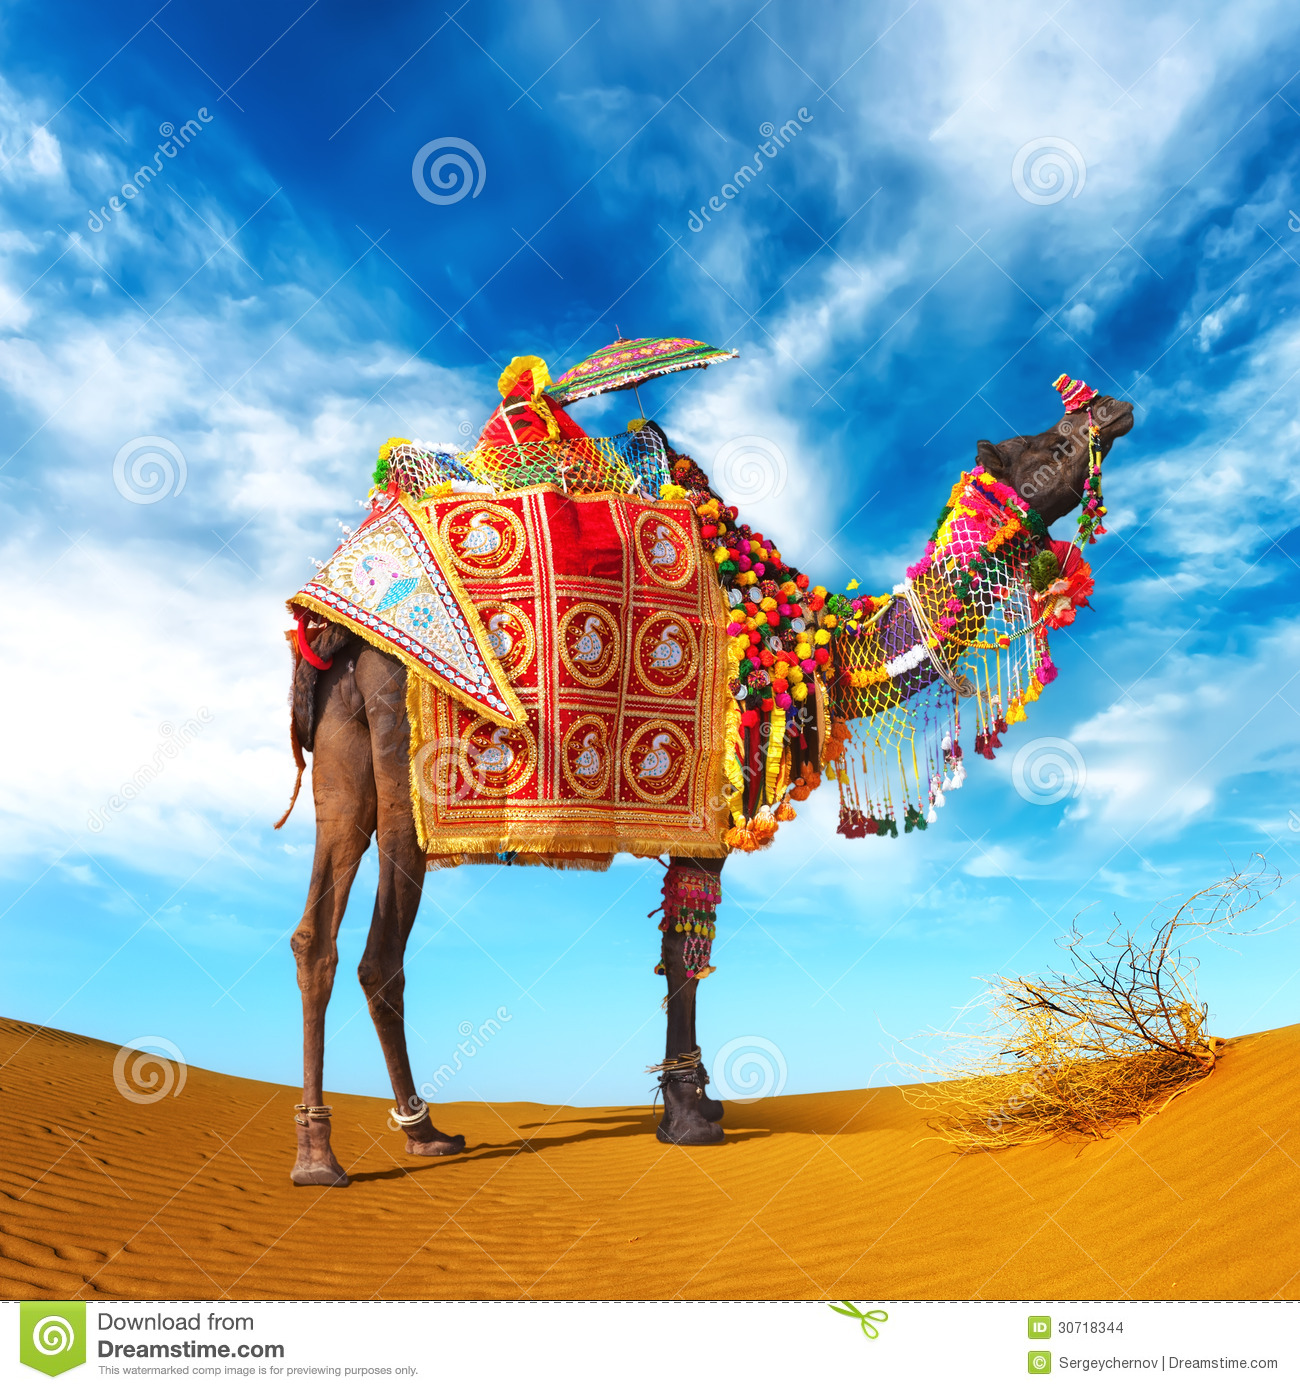 Egypt Pyramids Hd Wallpapers Camel In Desert Stock Photo Image Of India Attraction